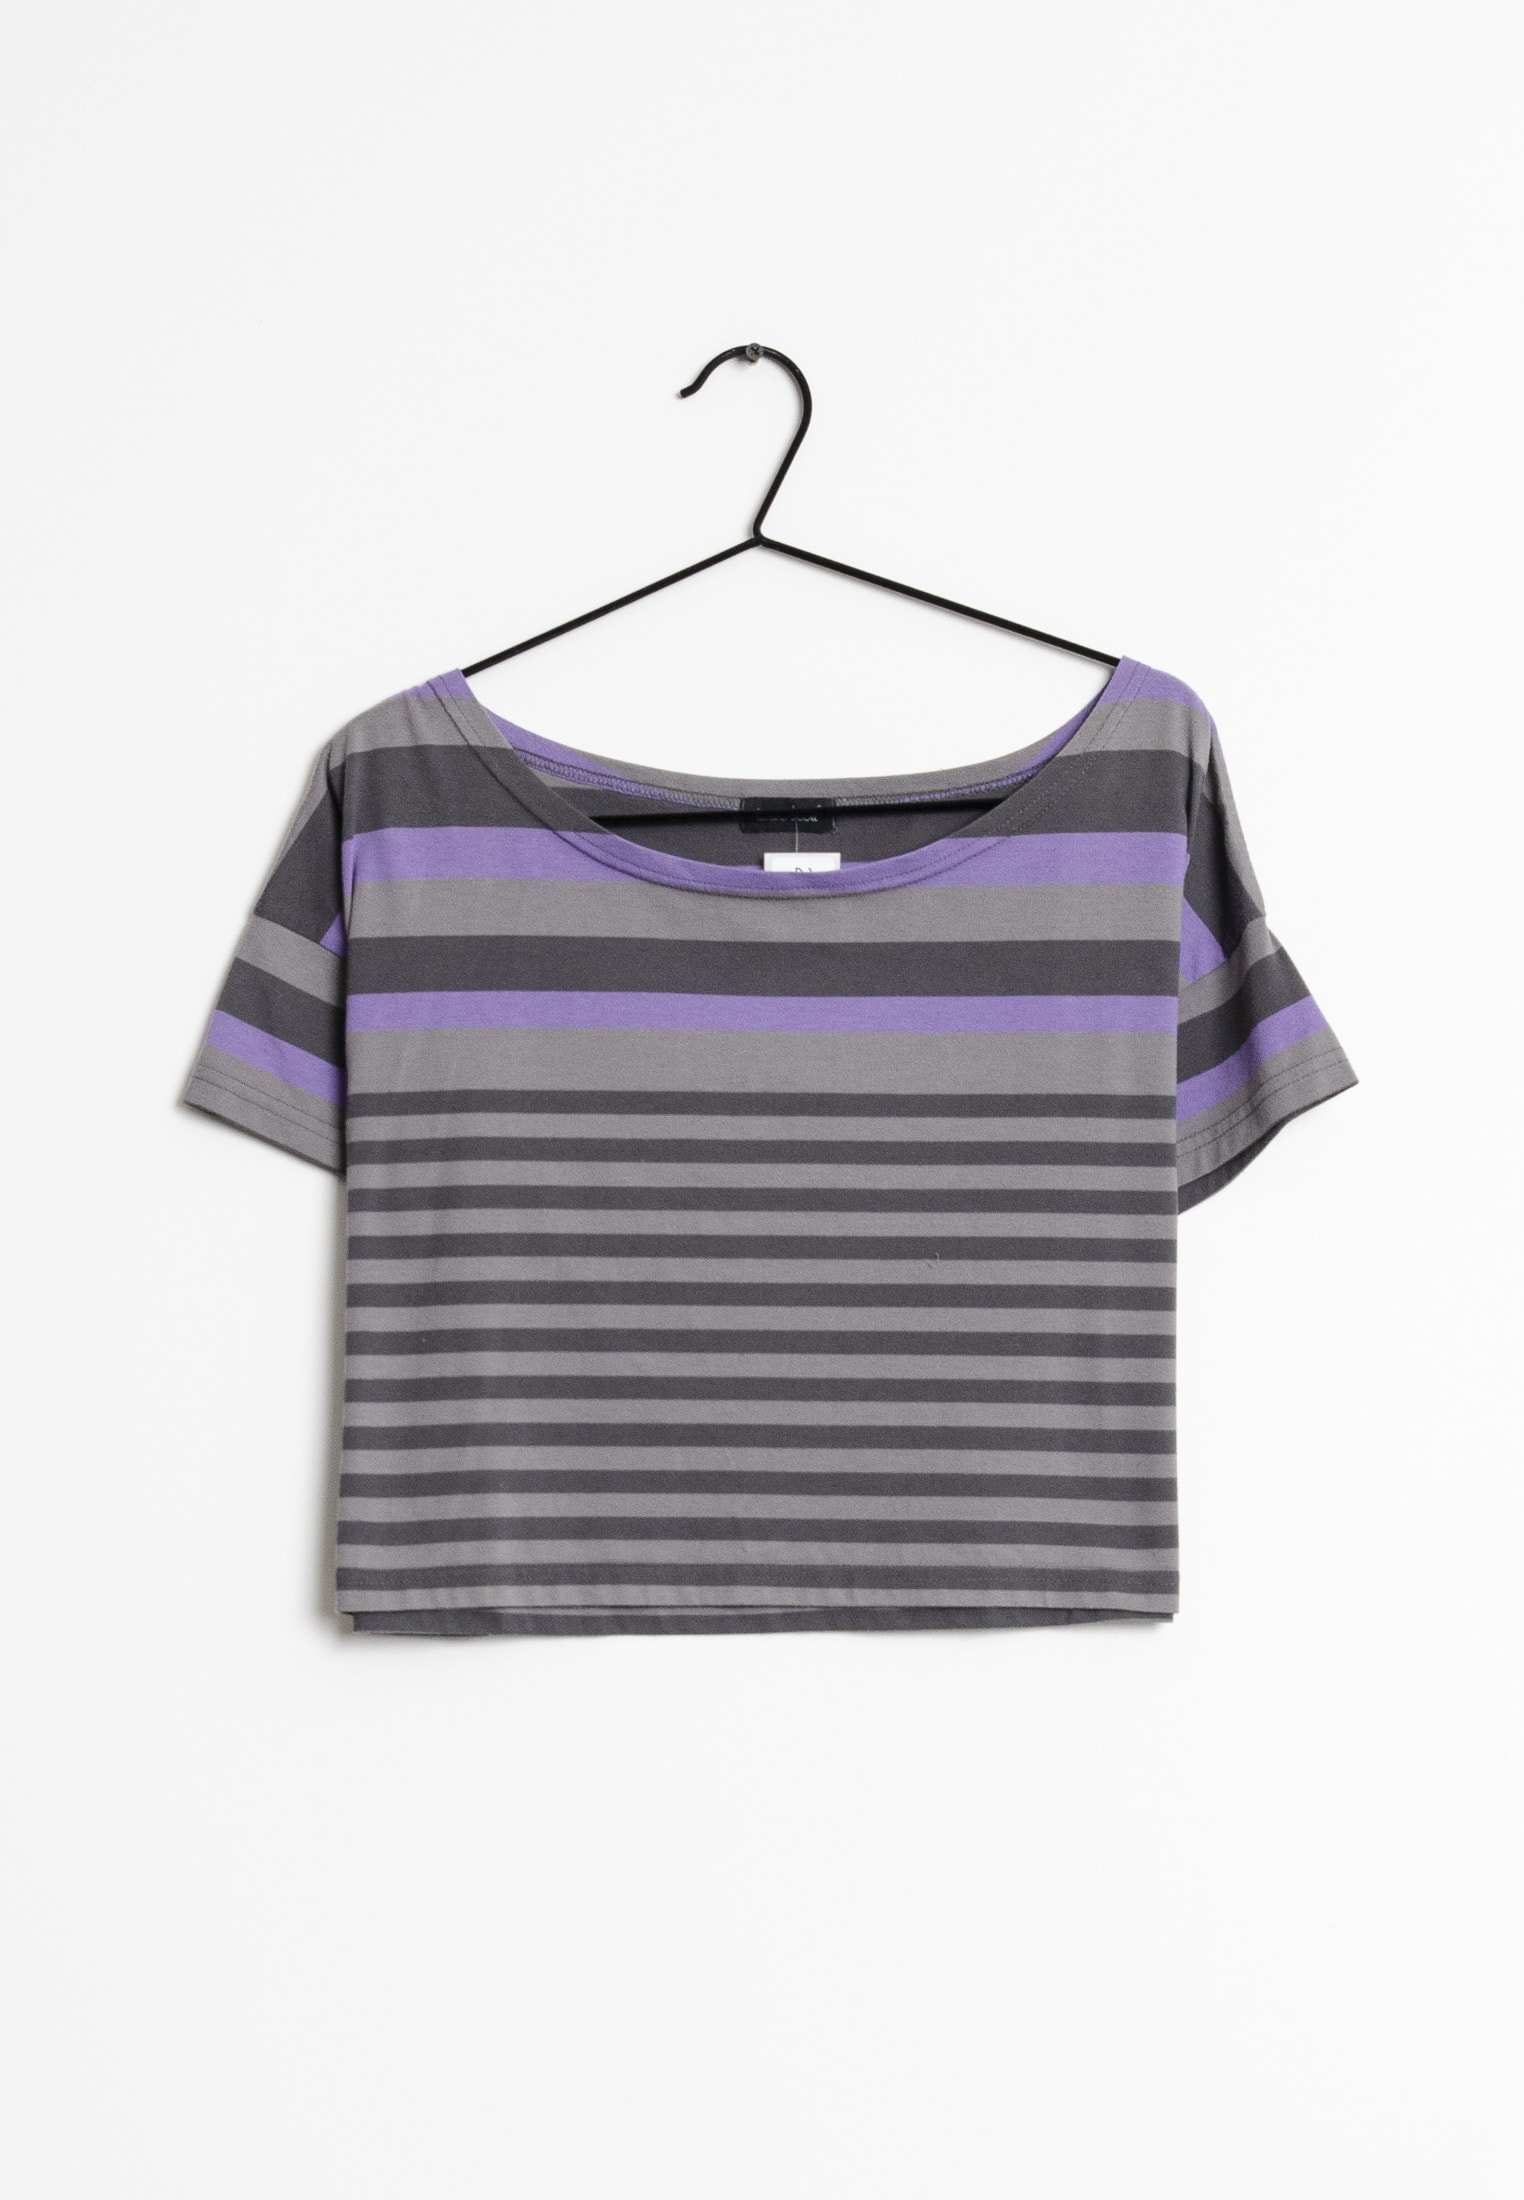 Laura Scott T-Shirt Lila Gr.36